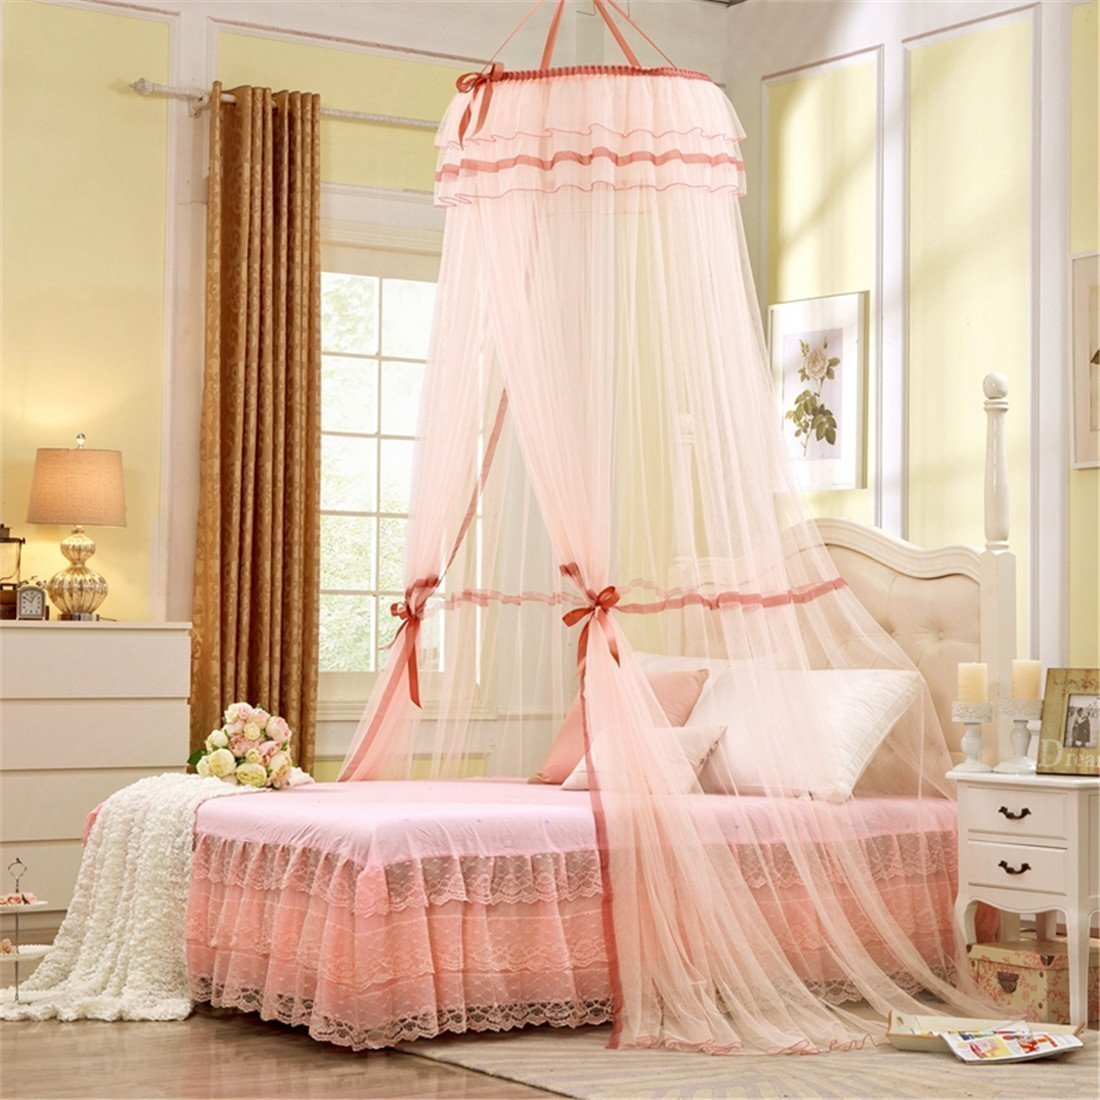 round hoop princess pastoral lace bed canopy deals from savealoonie. Black Bedroom Furniture Sets. Home Design Ideas